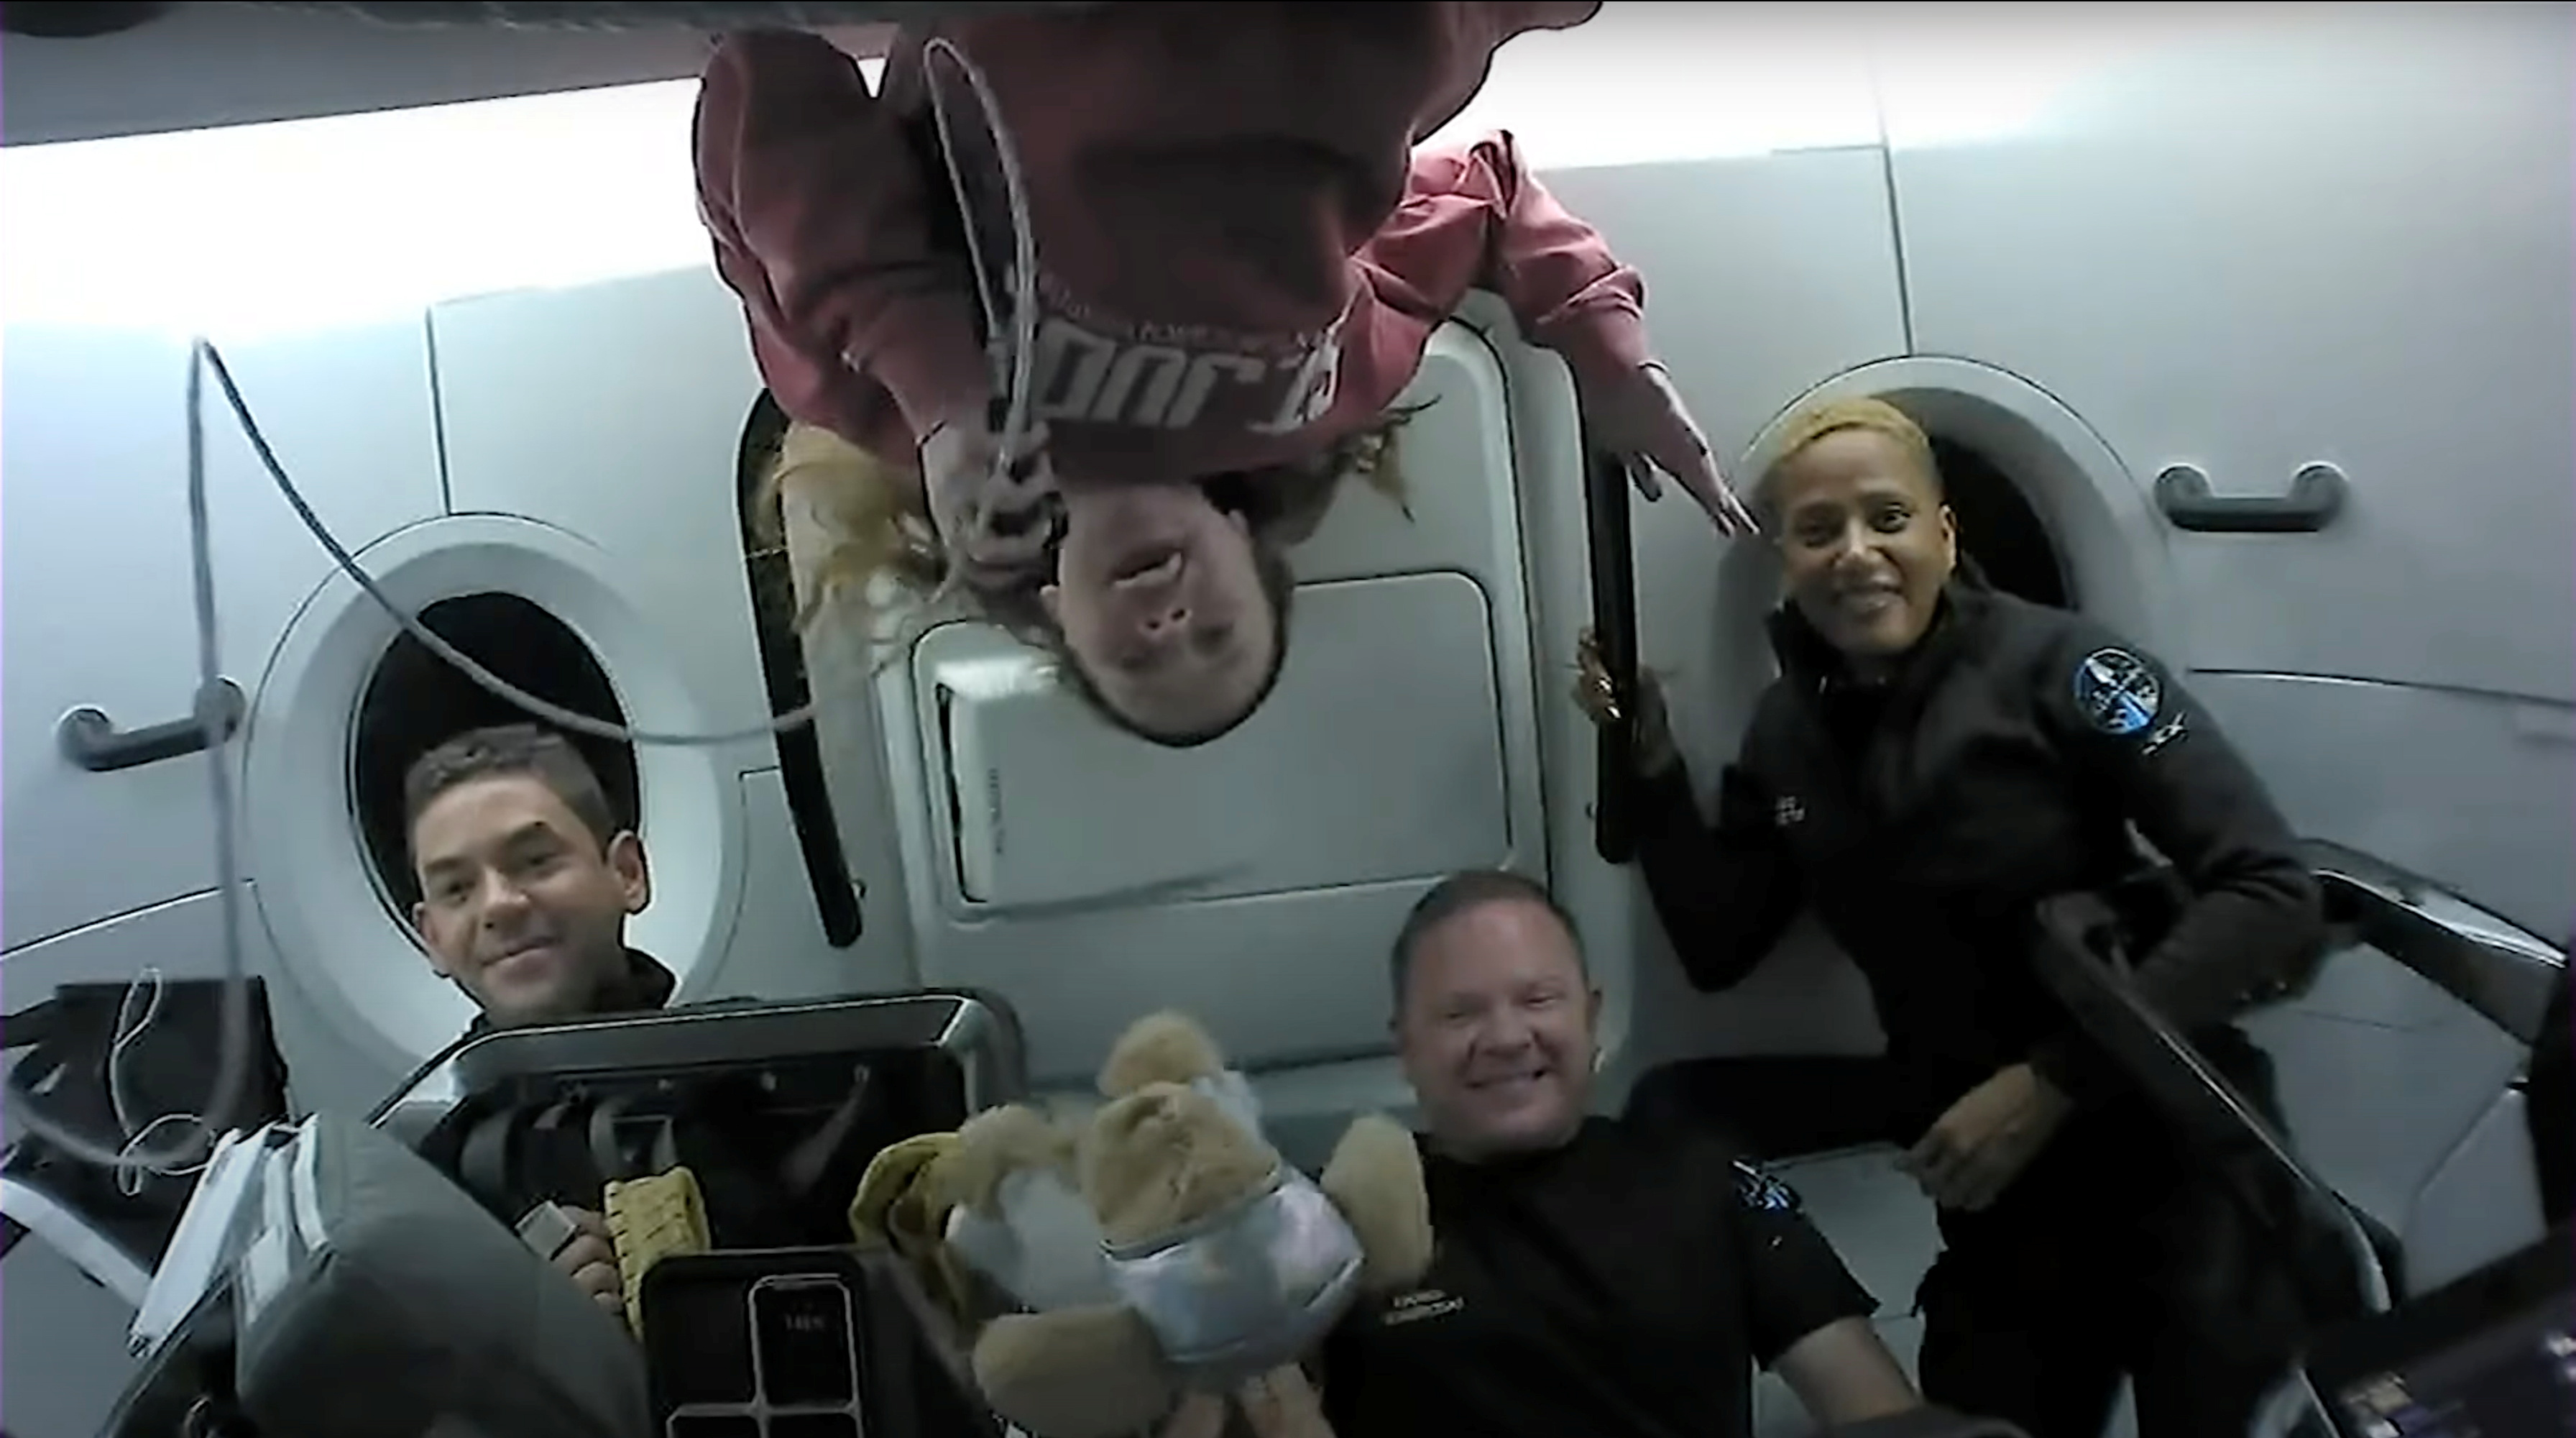 Inspiration4 crew  Jared Isaacman, Sian Proctor, Hayley Arceneaux, and Chris Sembroski chatting with St. Jude patients from space in this handout photo released on September 17, 2021. SpaceX/Handout via REUTERS